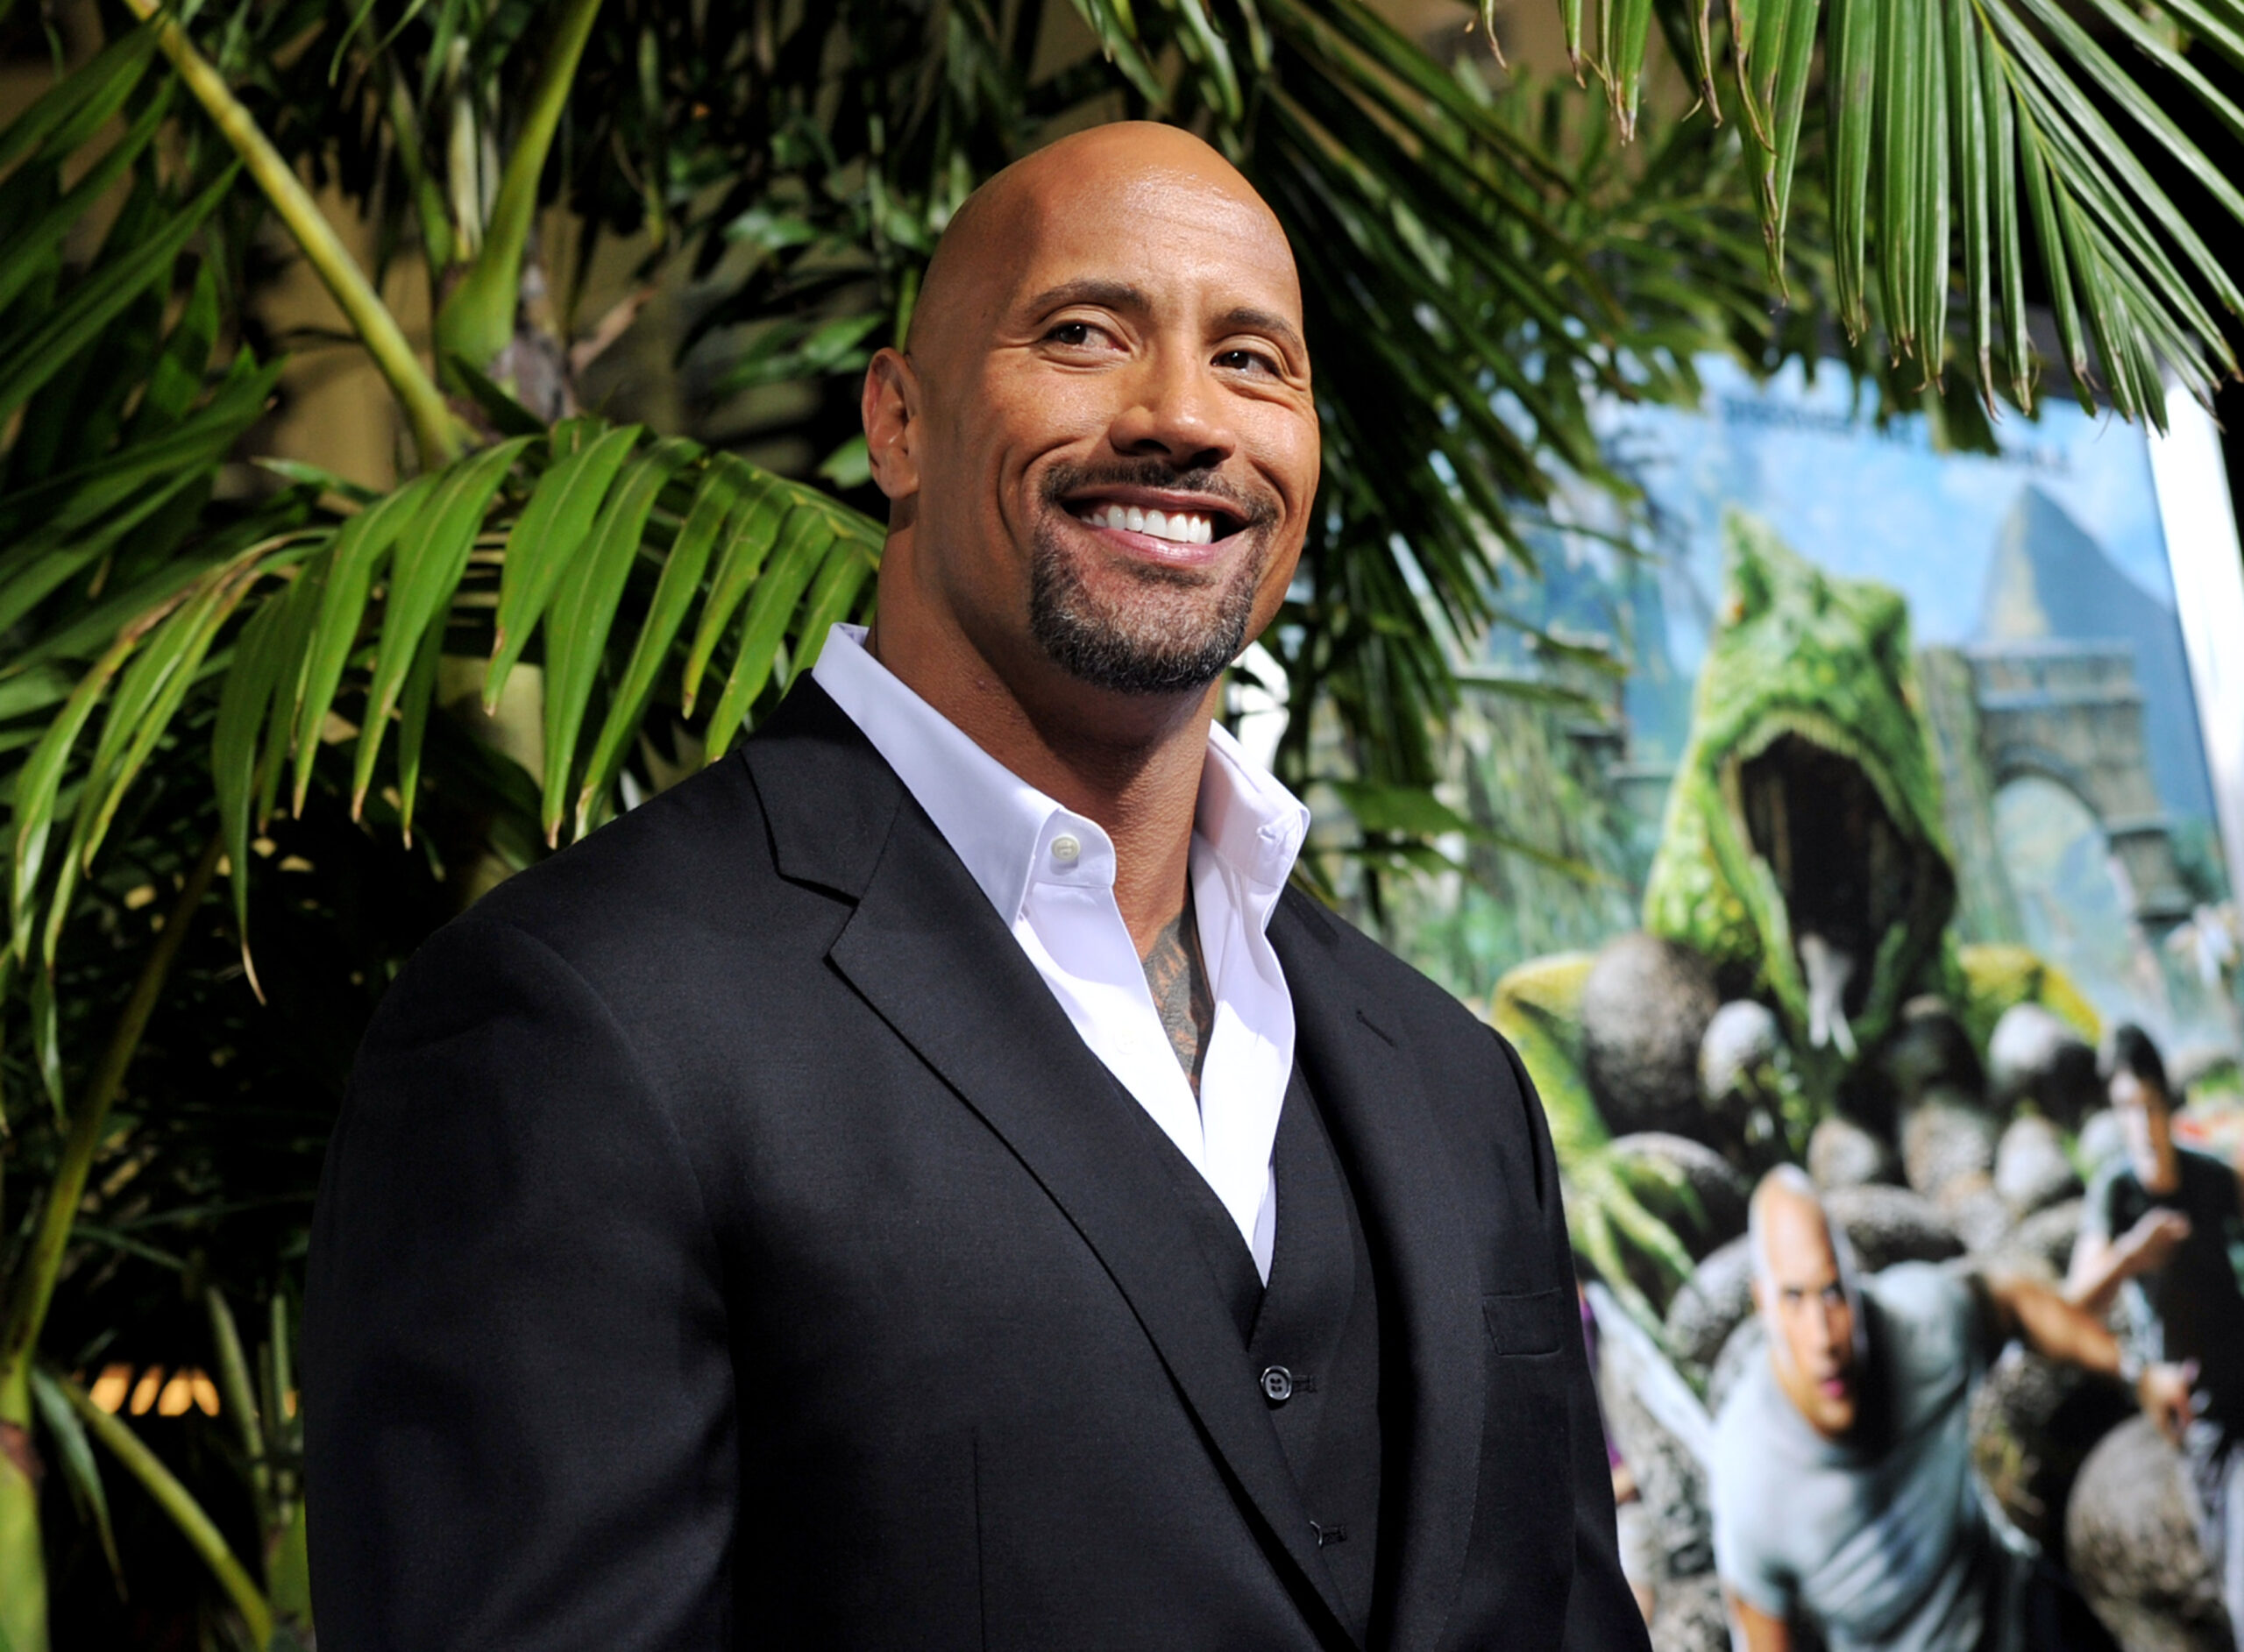 'Where is our leader?': Dwayne 'The Rock' Johnson calls out Donald Trump